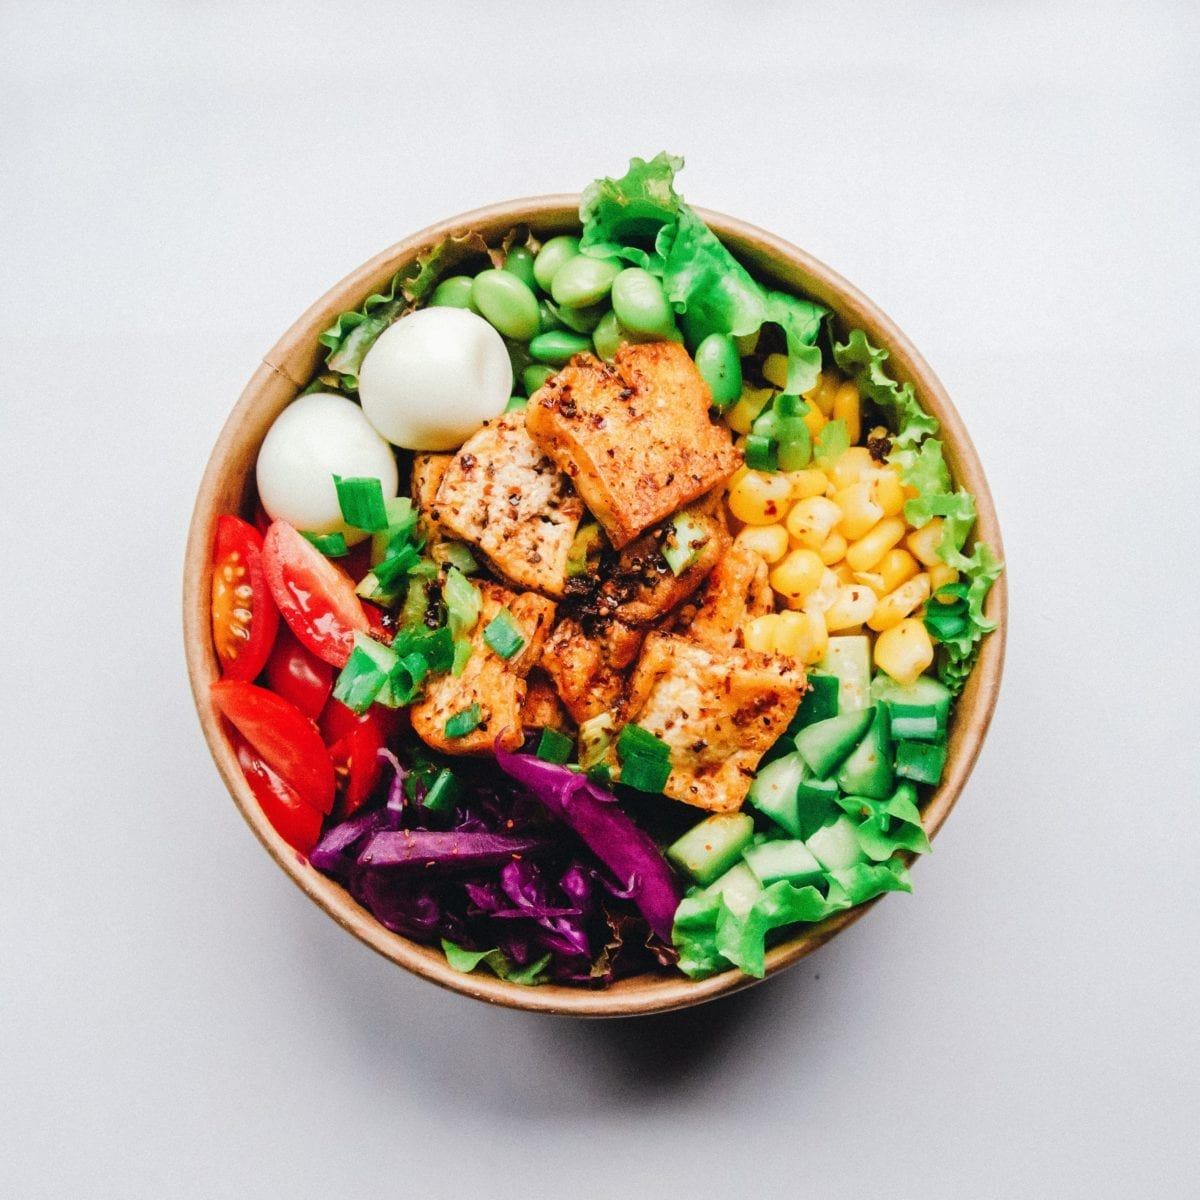 Mixed salad, high in protein and a diverse range of nutrients. Eat the rainbow